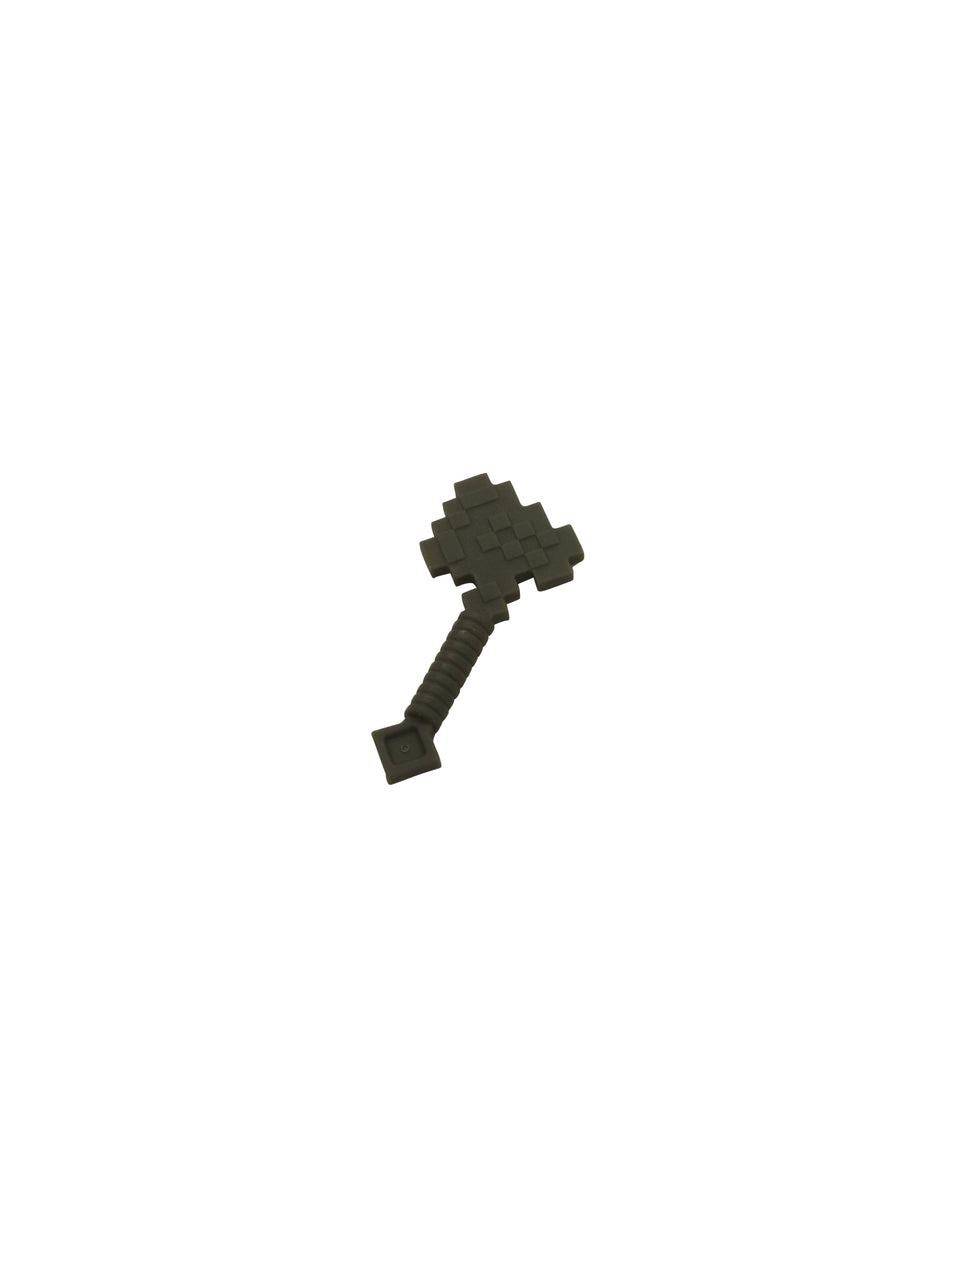 Minecraft Little Ax - Lego